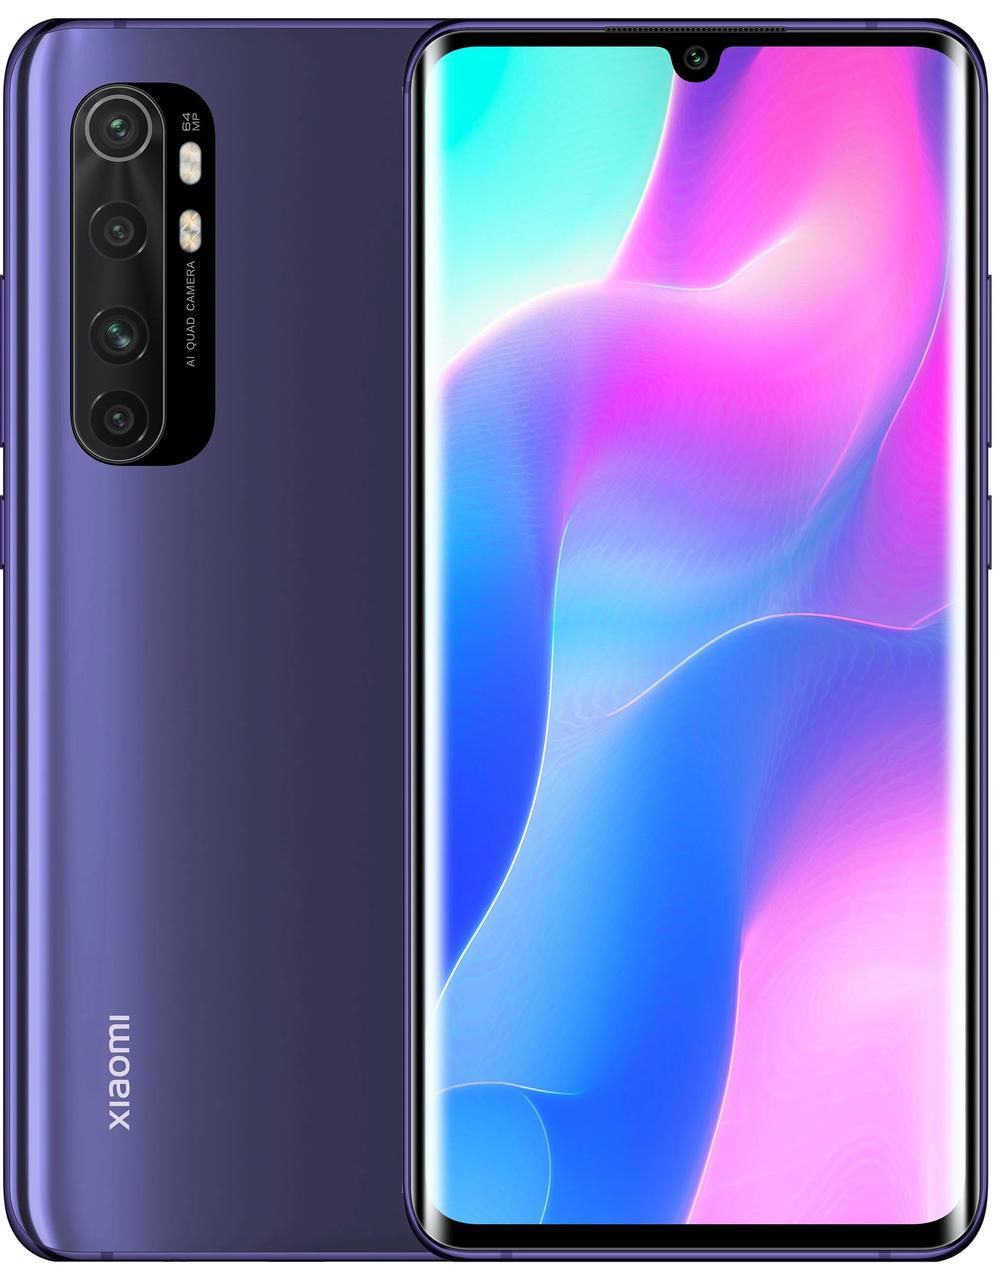 Mi Note 10 Lite 6/64Gb (Nebula Purple)